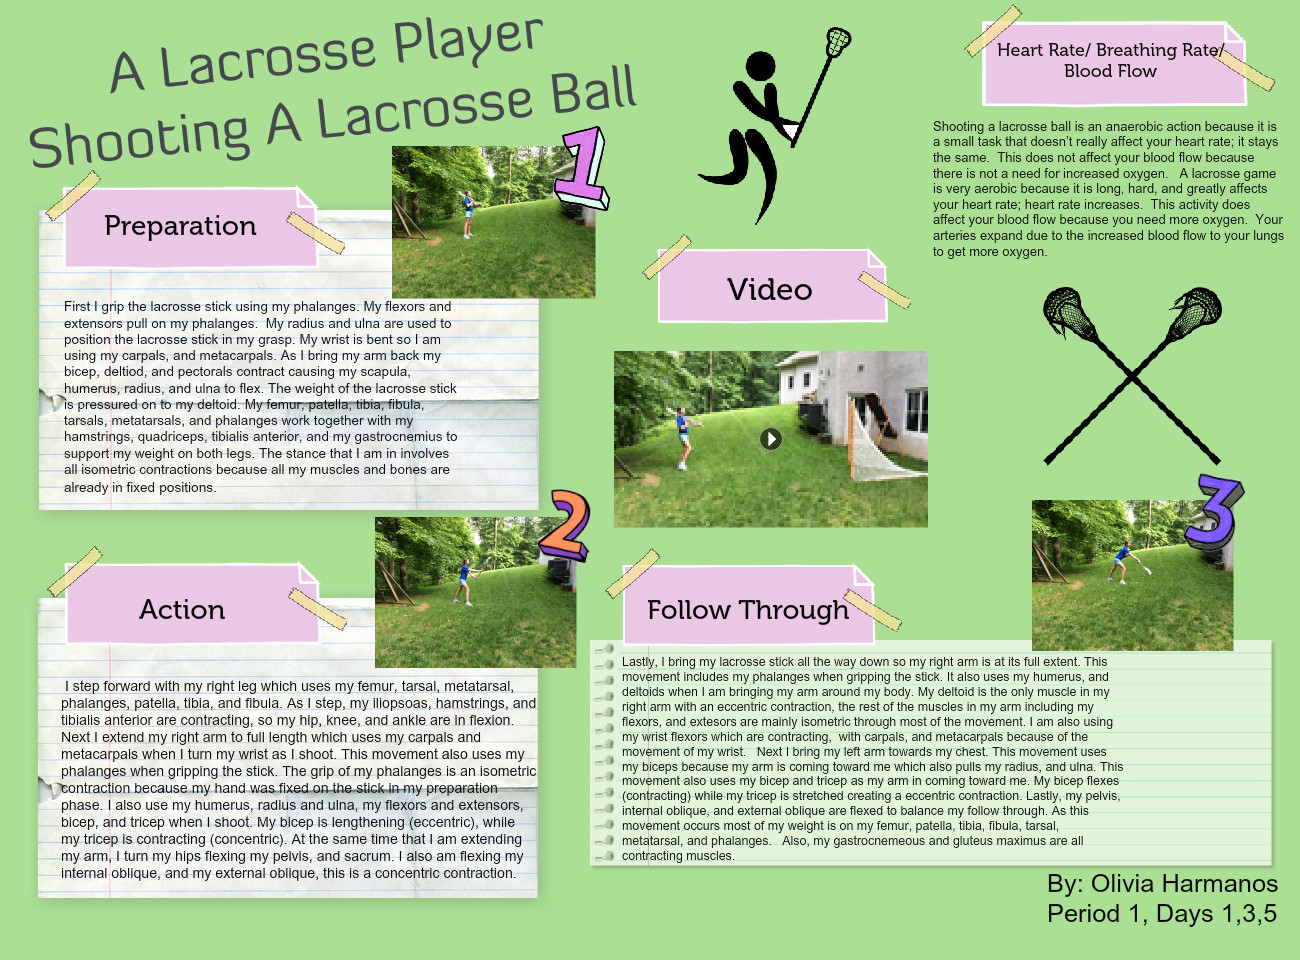 [2013] Olivia Harmanos: A Lacrosse Player Shooting A Lacrosse Ball